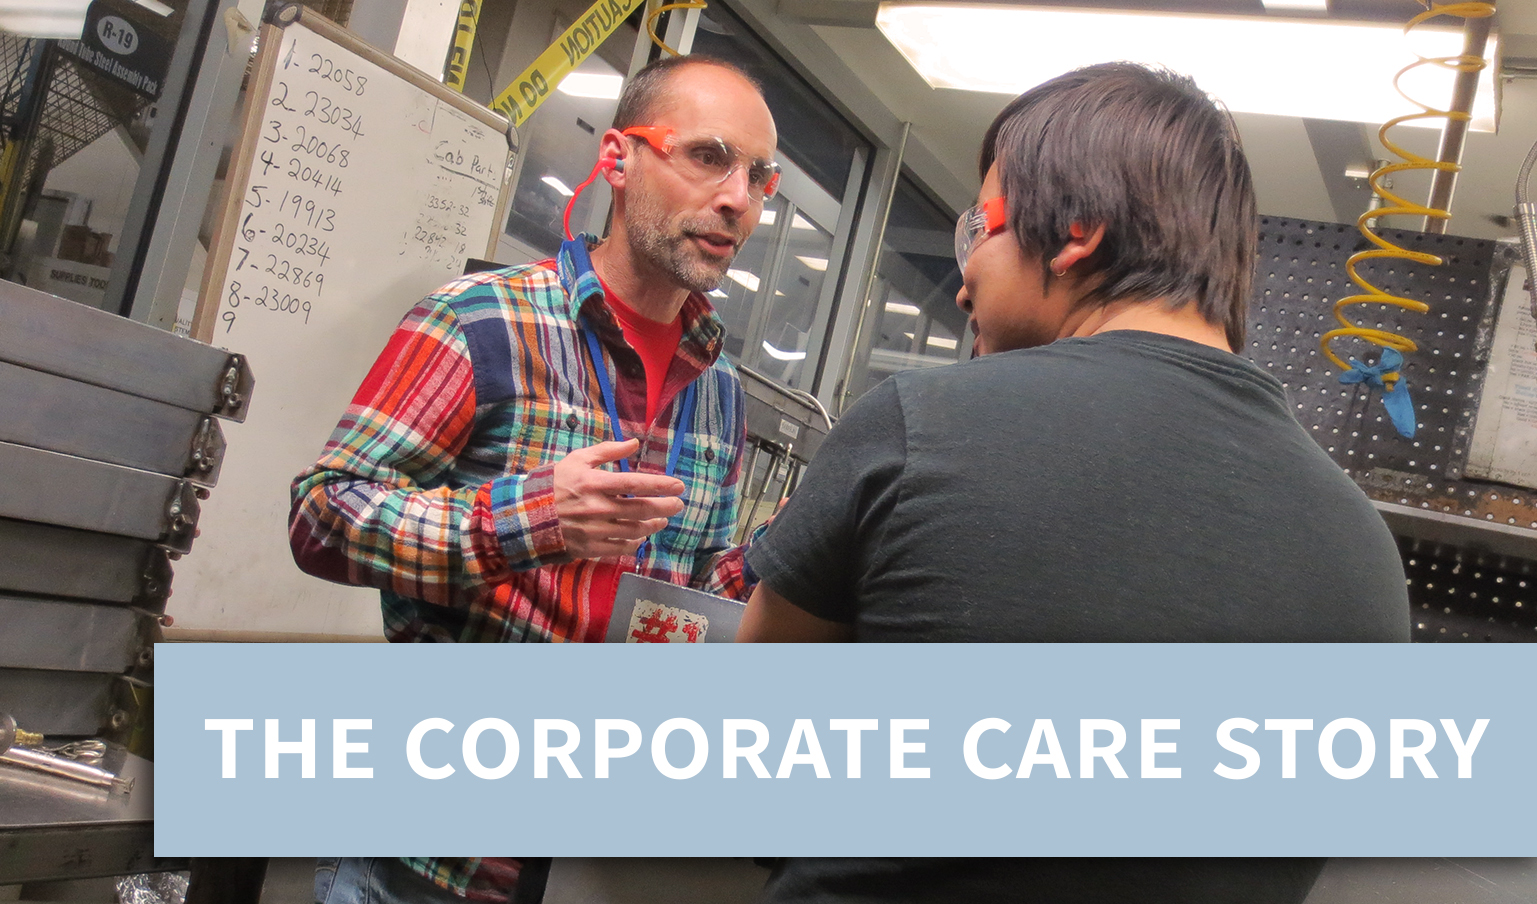 The Corporate Care Story